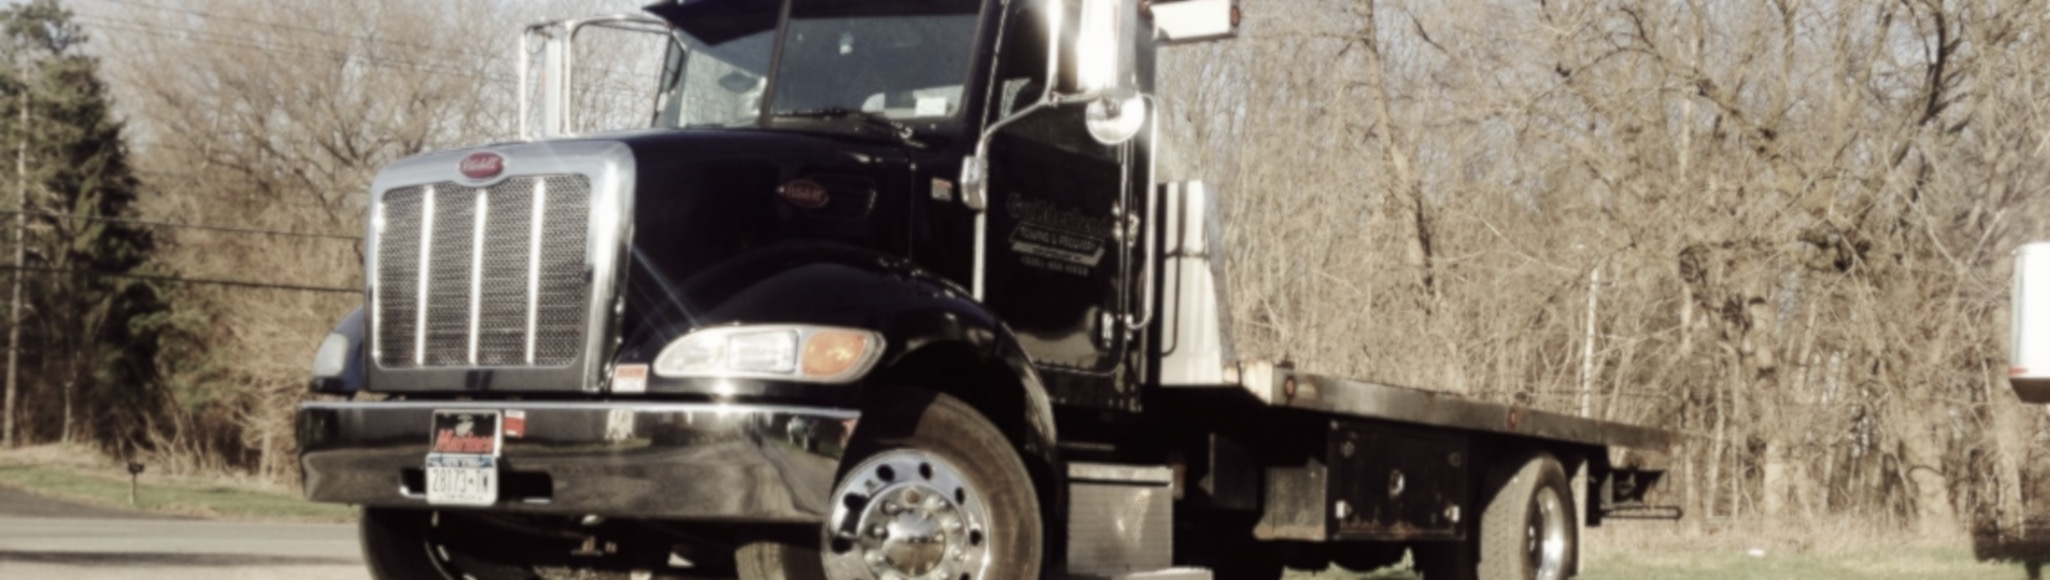 guilderland towing service